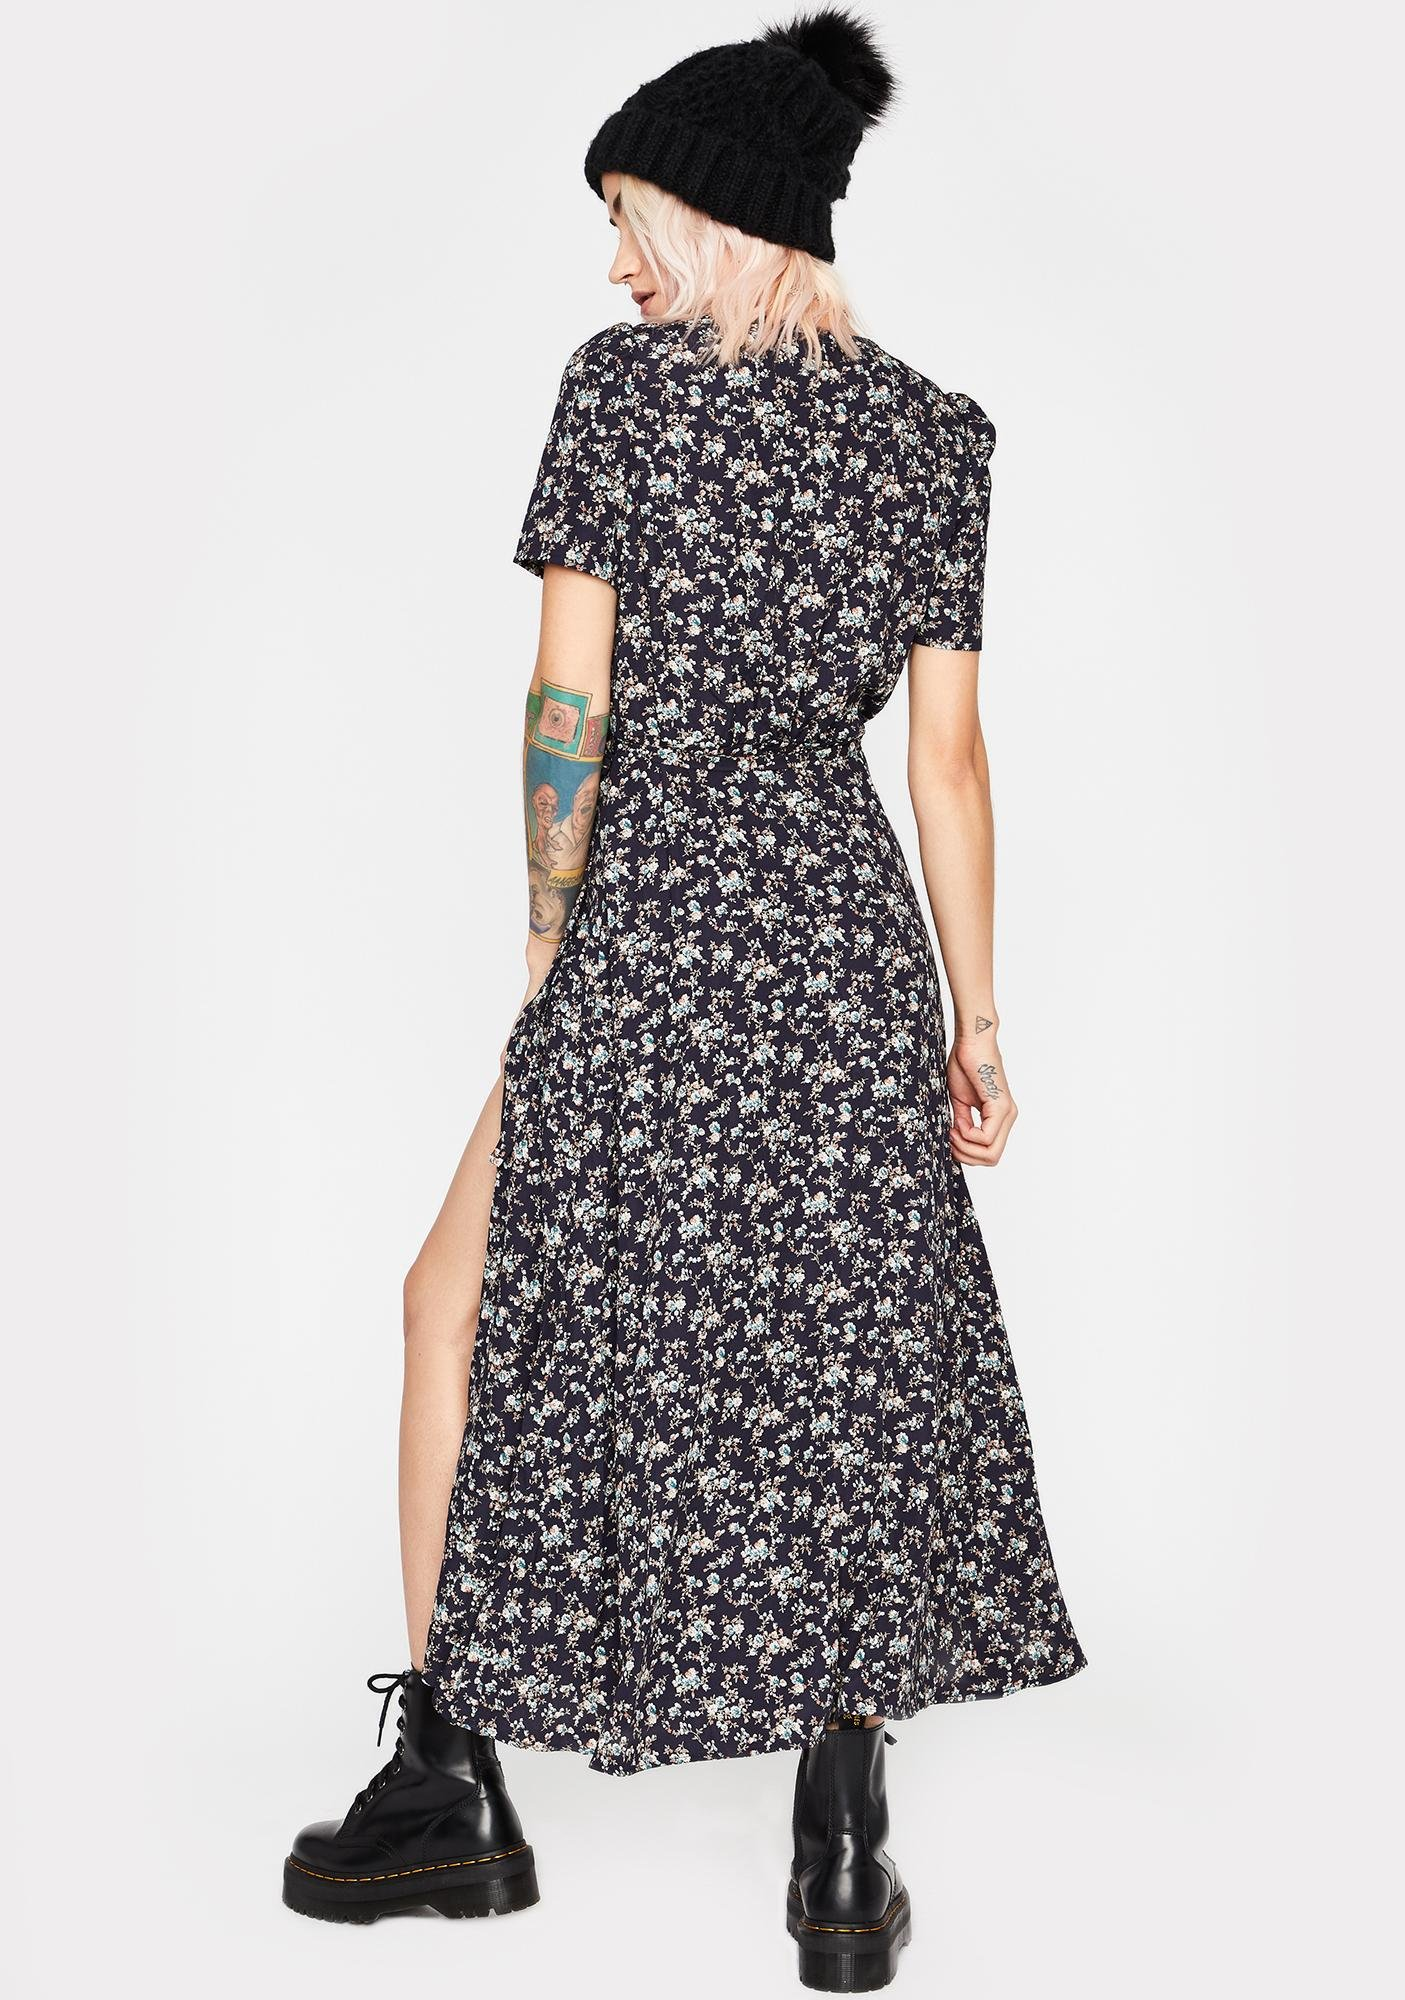 Desires Manifested Floral Maxi Dress